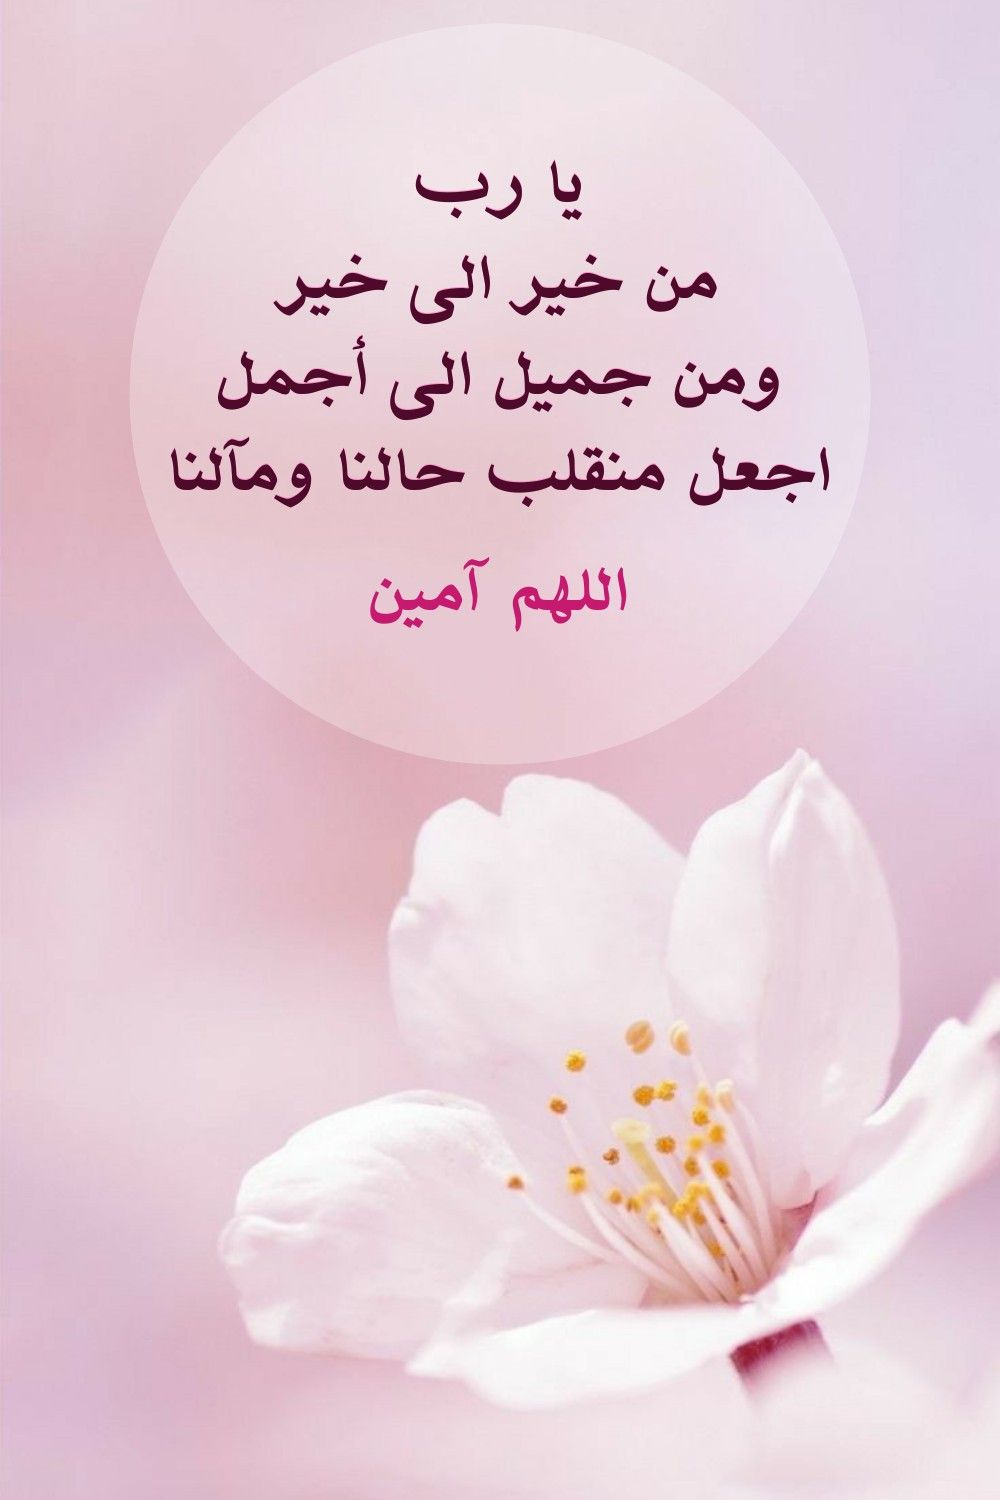 Pin By Sura On حكم أقوال شعر Place Card Holders Place Cards Cards